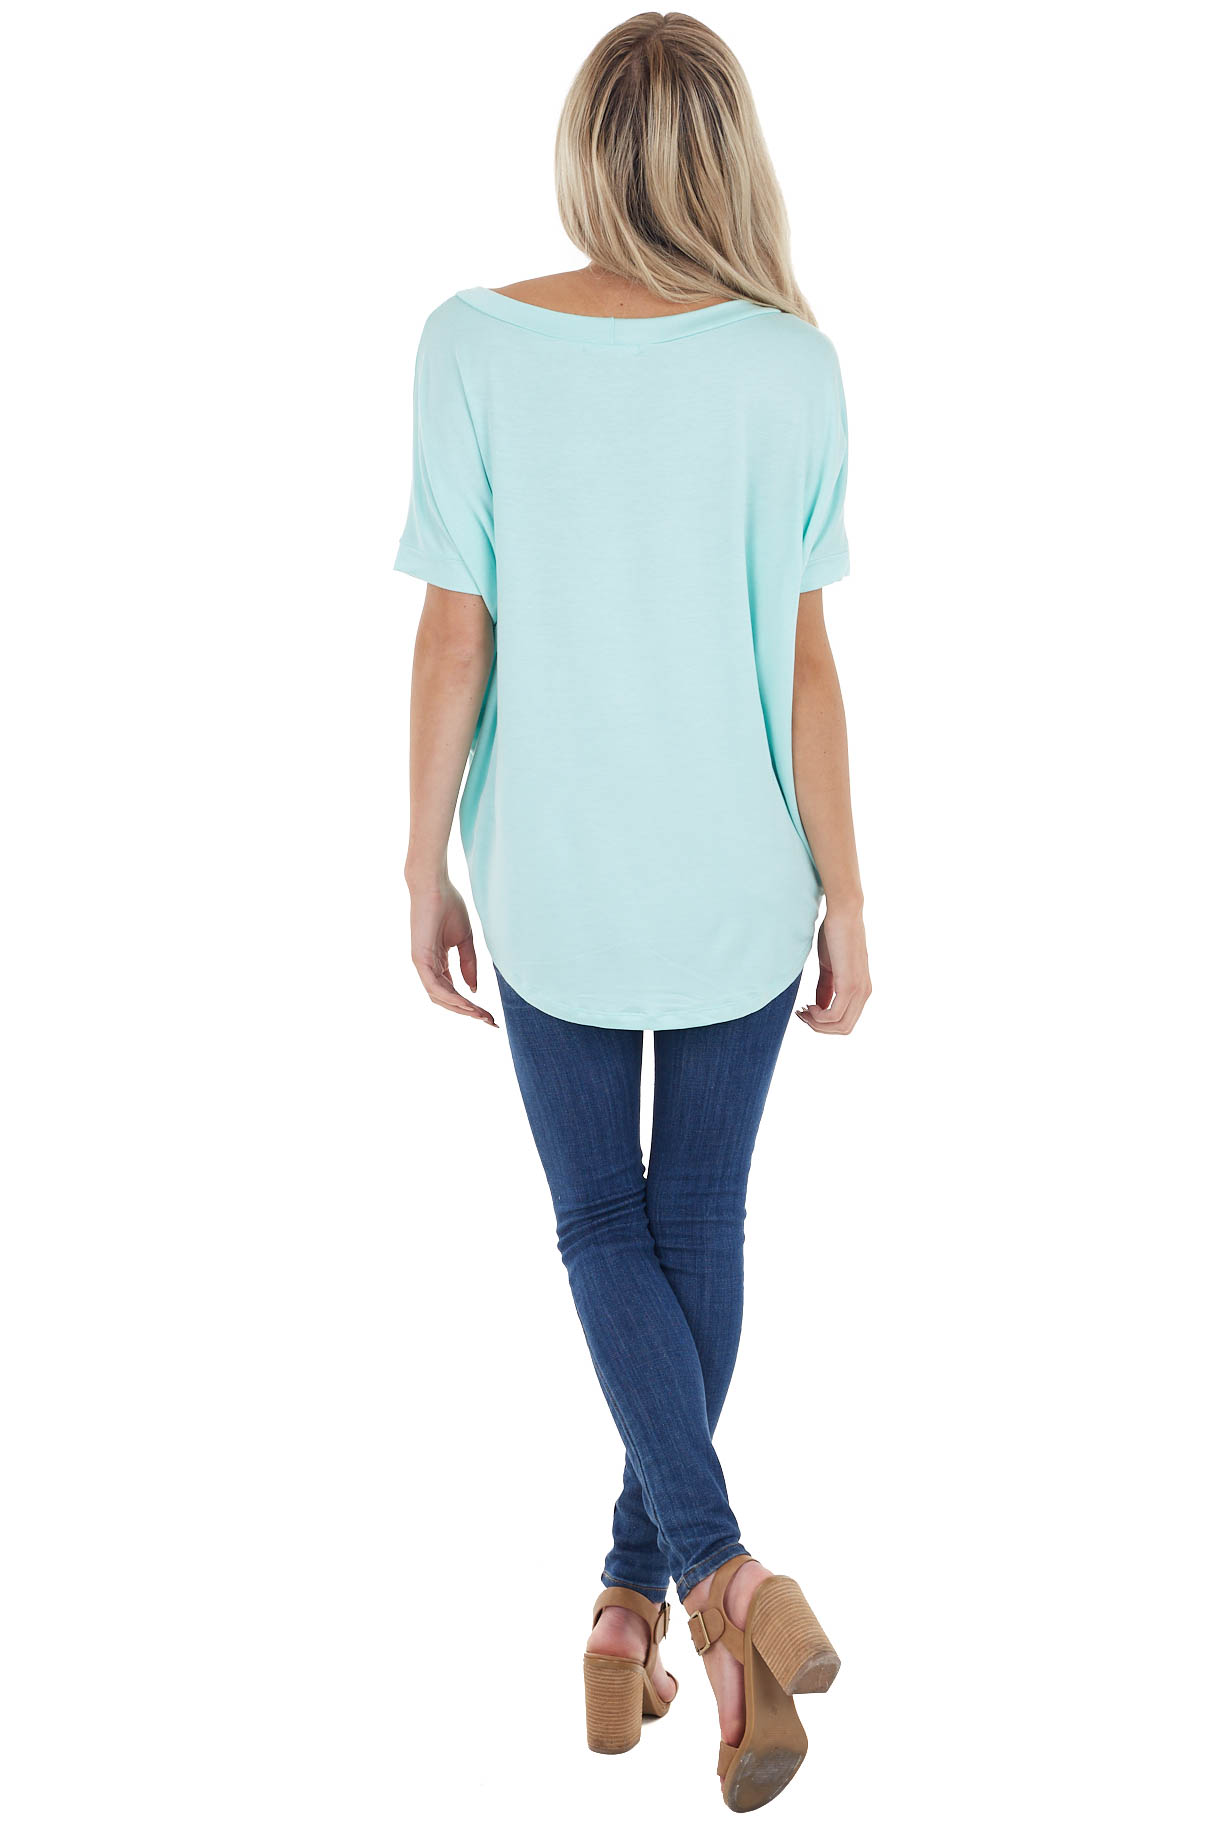 Mint French Terry Knit Top with Short Dolman Sleeves